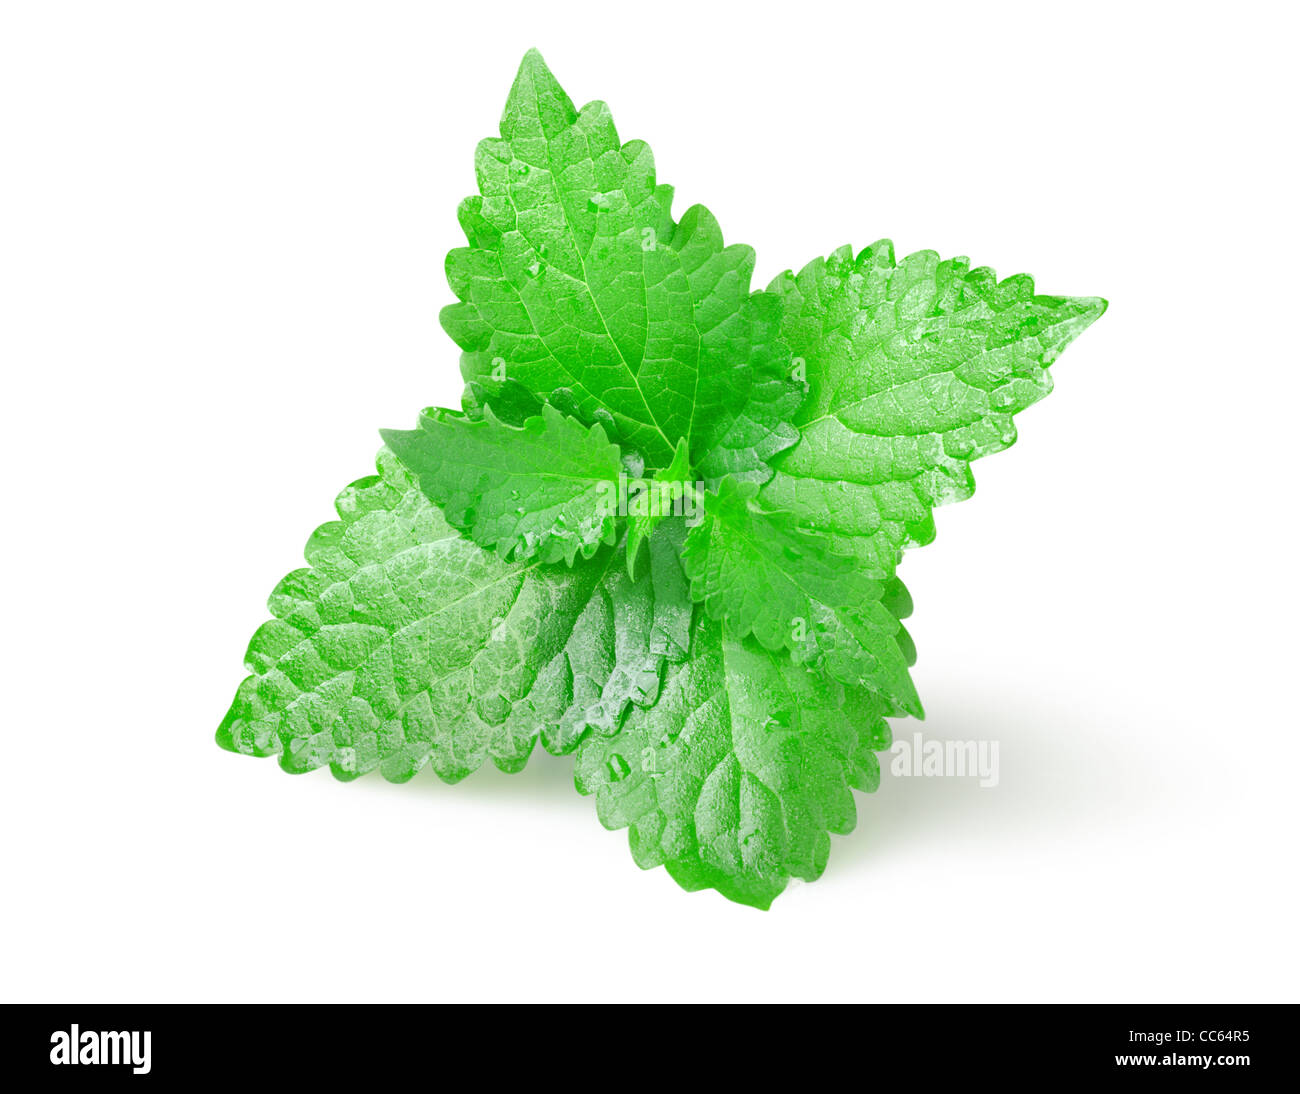 Green mint leaves isolated on white background - Stock Image